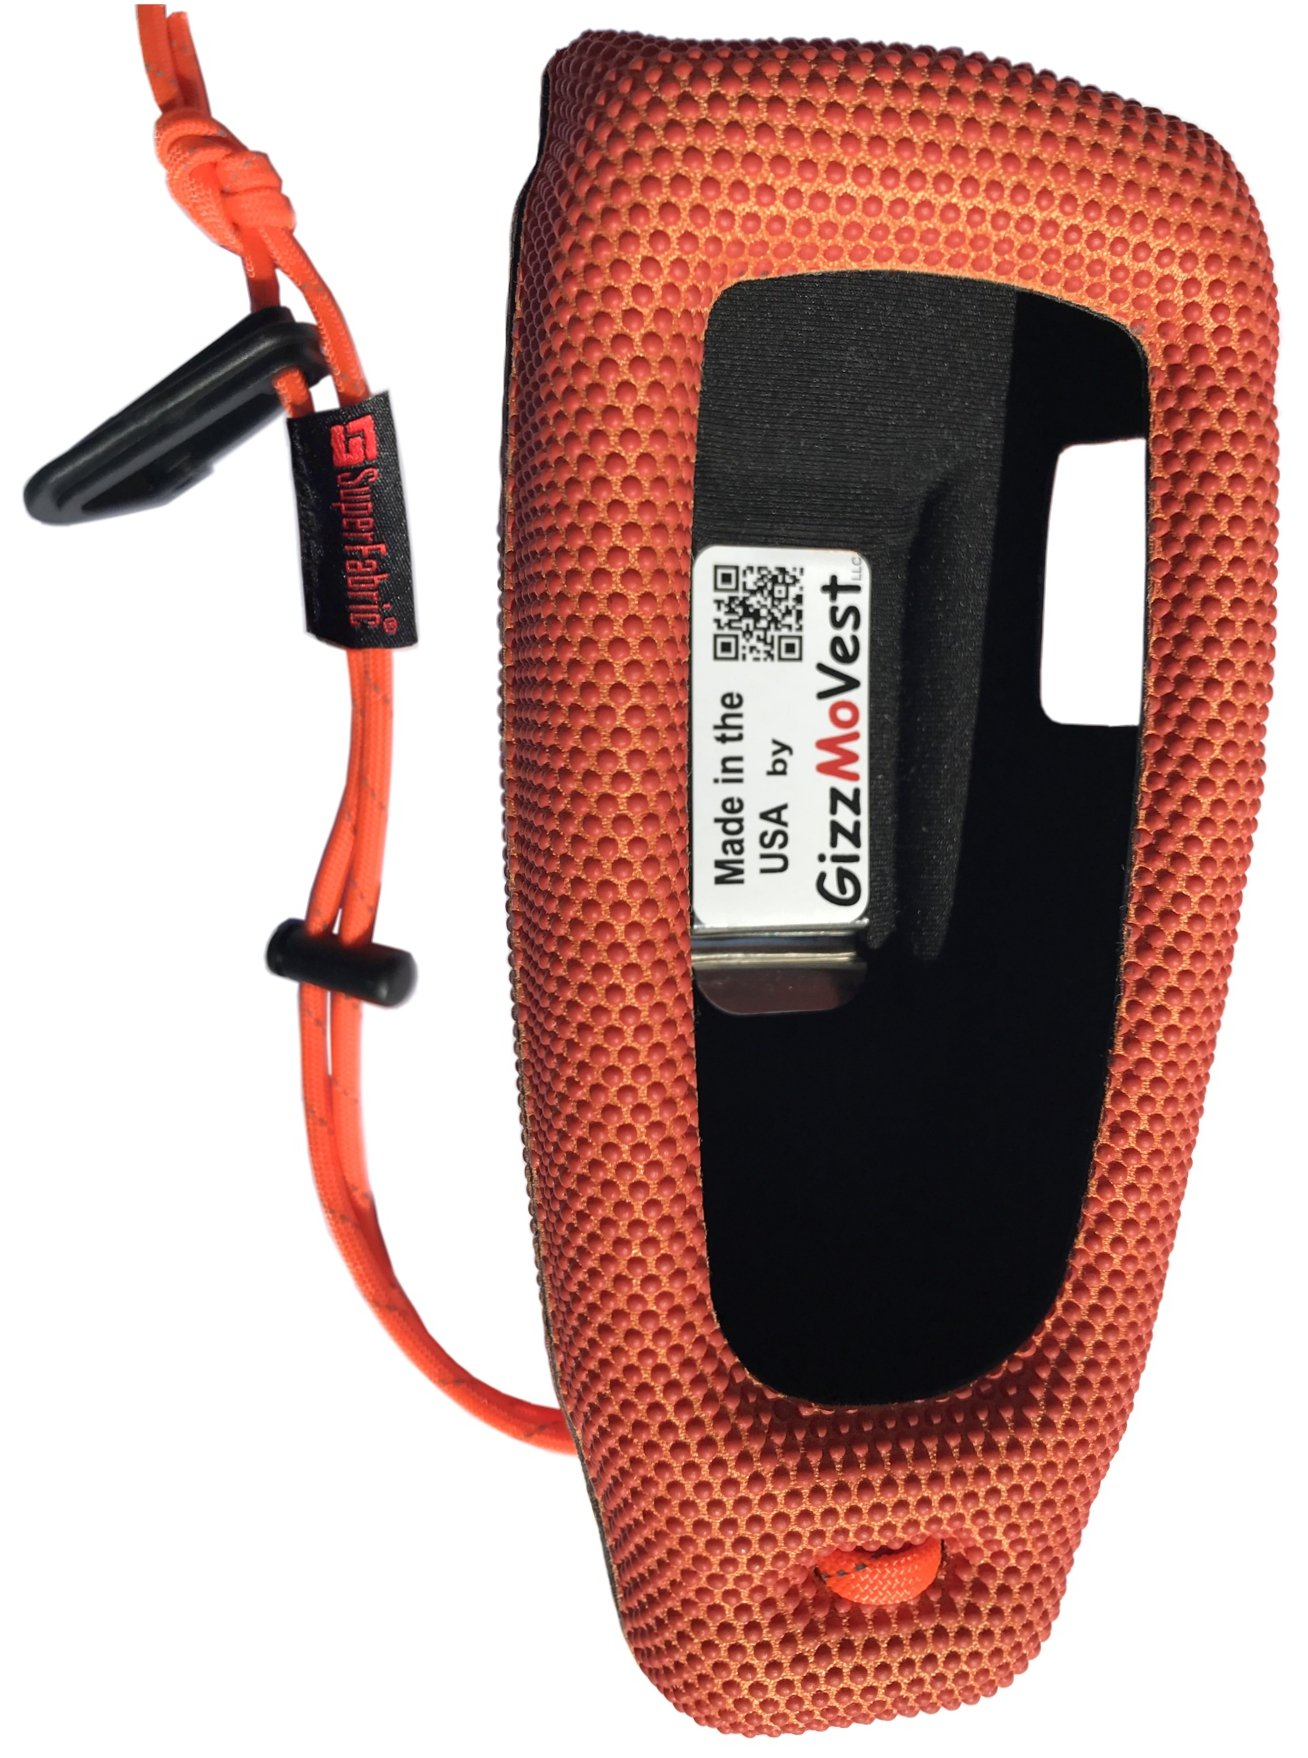 Case Cover compatible with Garmin InReach SE / Explorer. Made in the USA